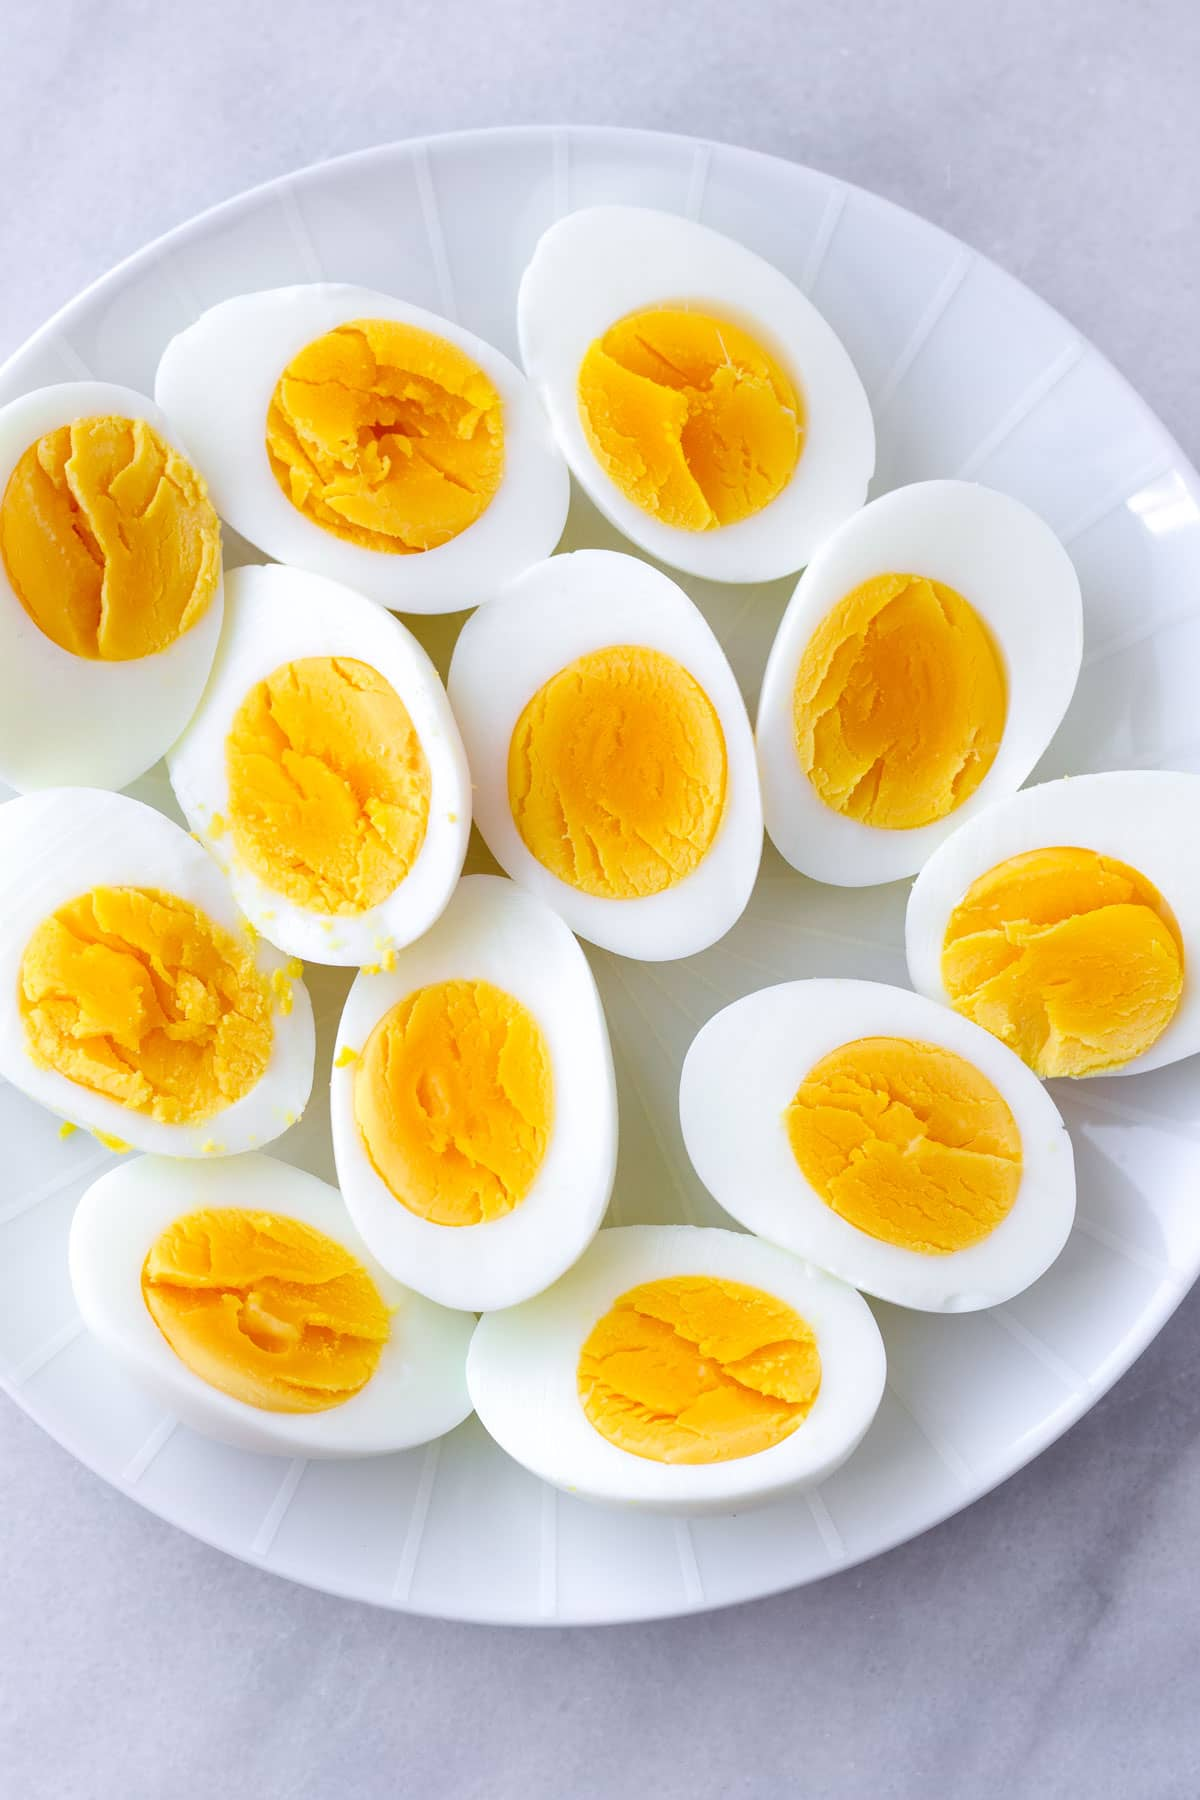 eggs cut in half showing fully cooked egg yolks